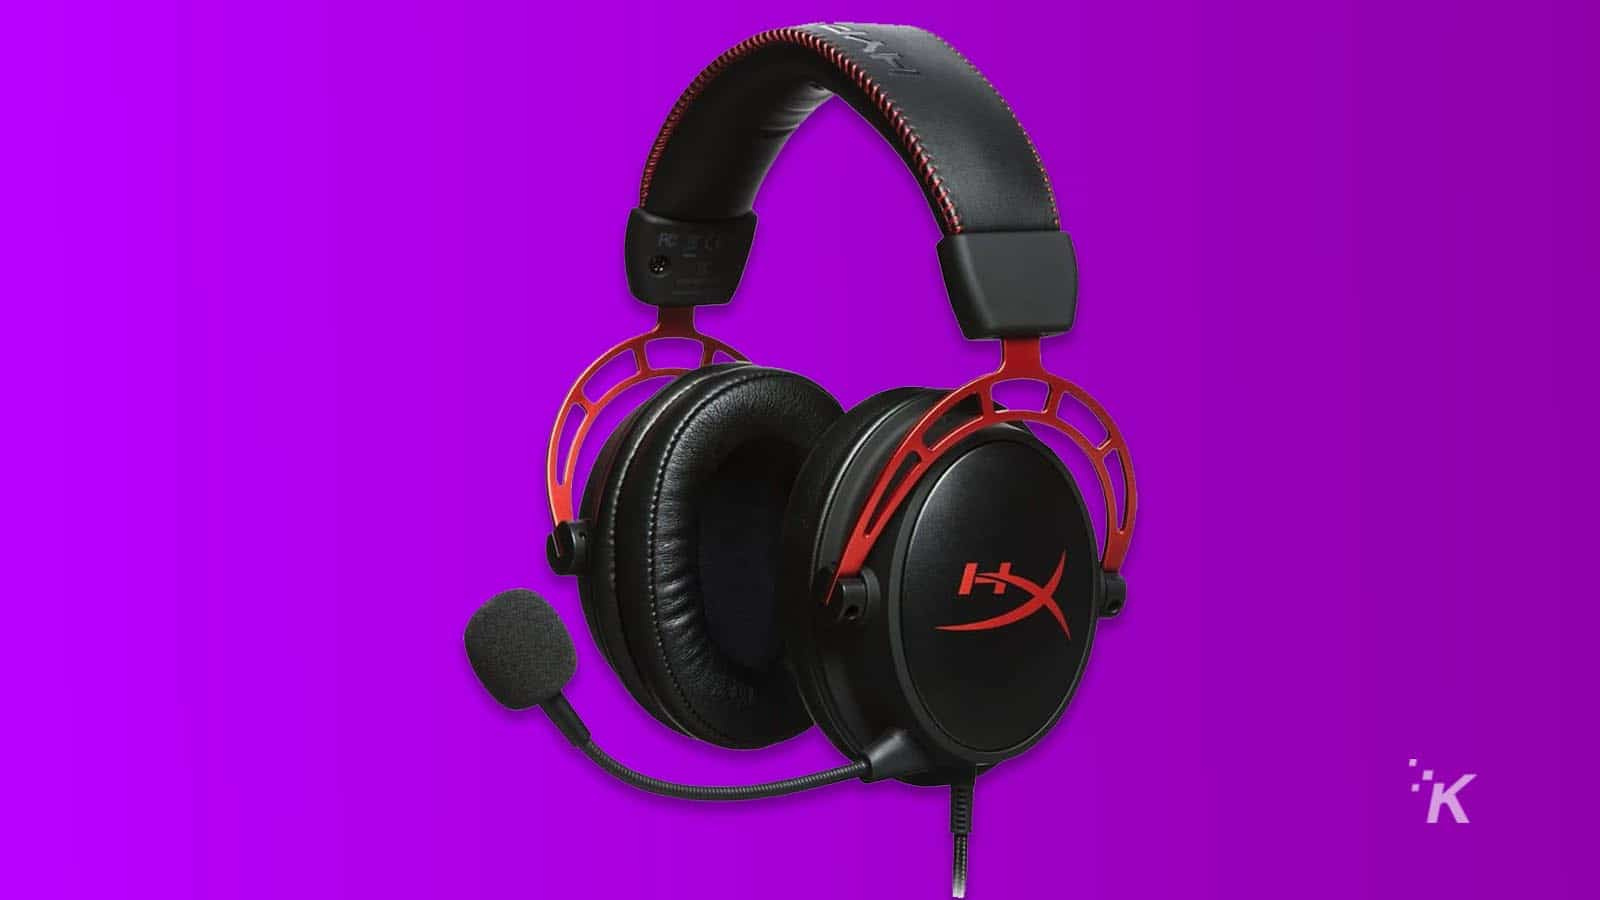 hyper x cloud gaming headset